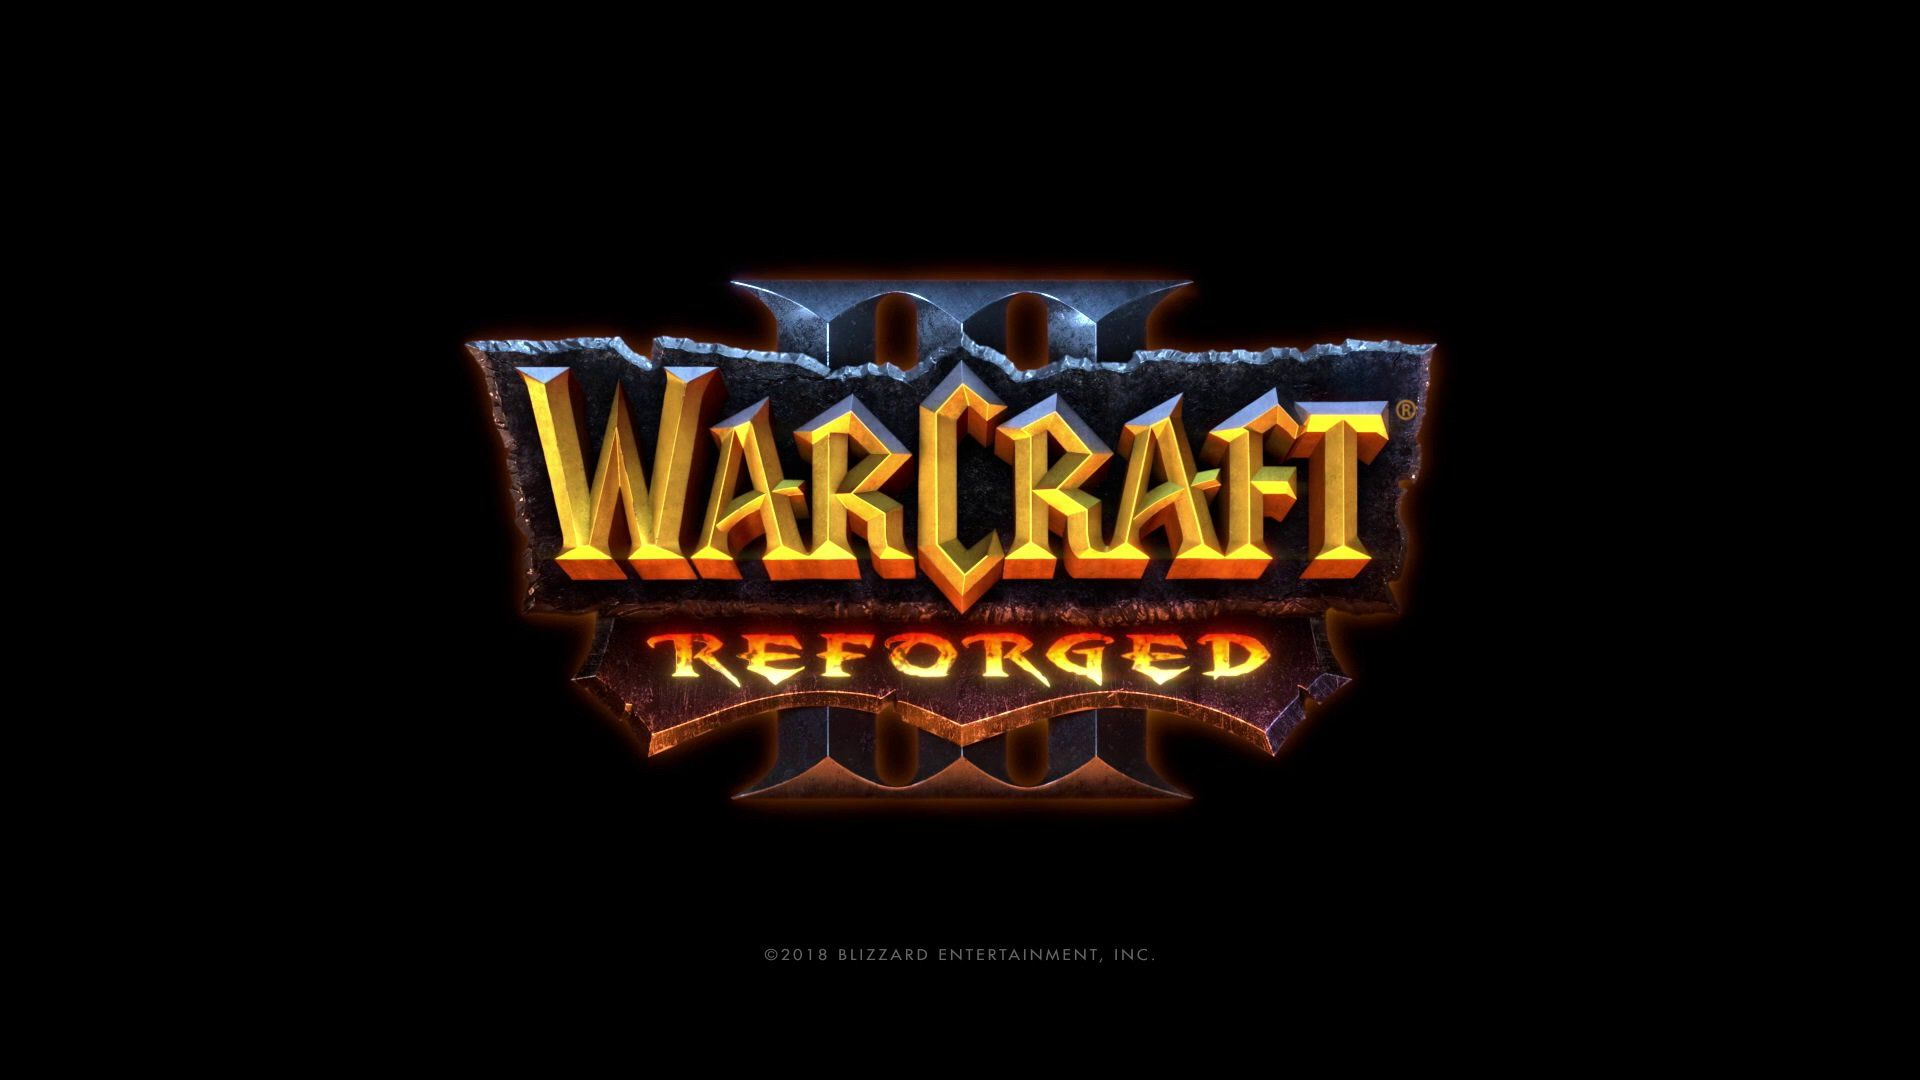 Warcraft 3 Reforged Revealed At BlizzCon, Coming In 2019